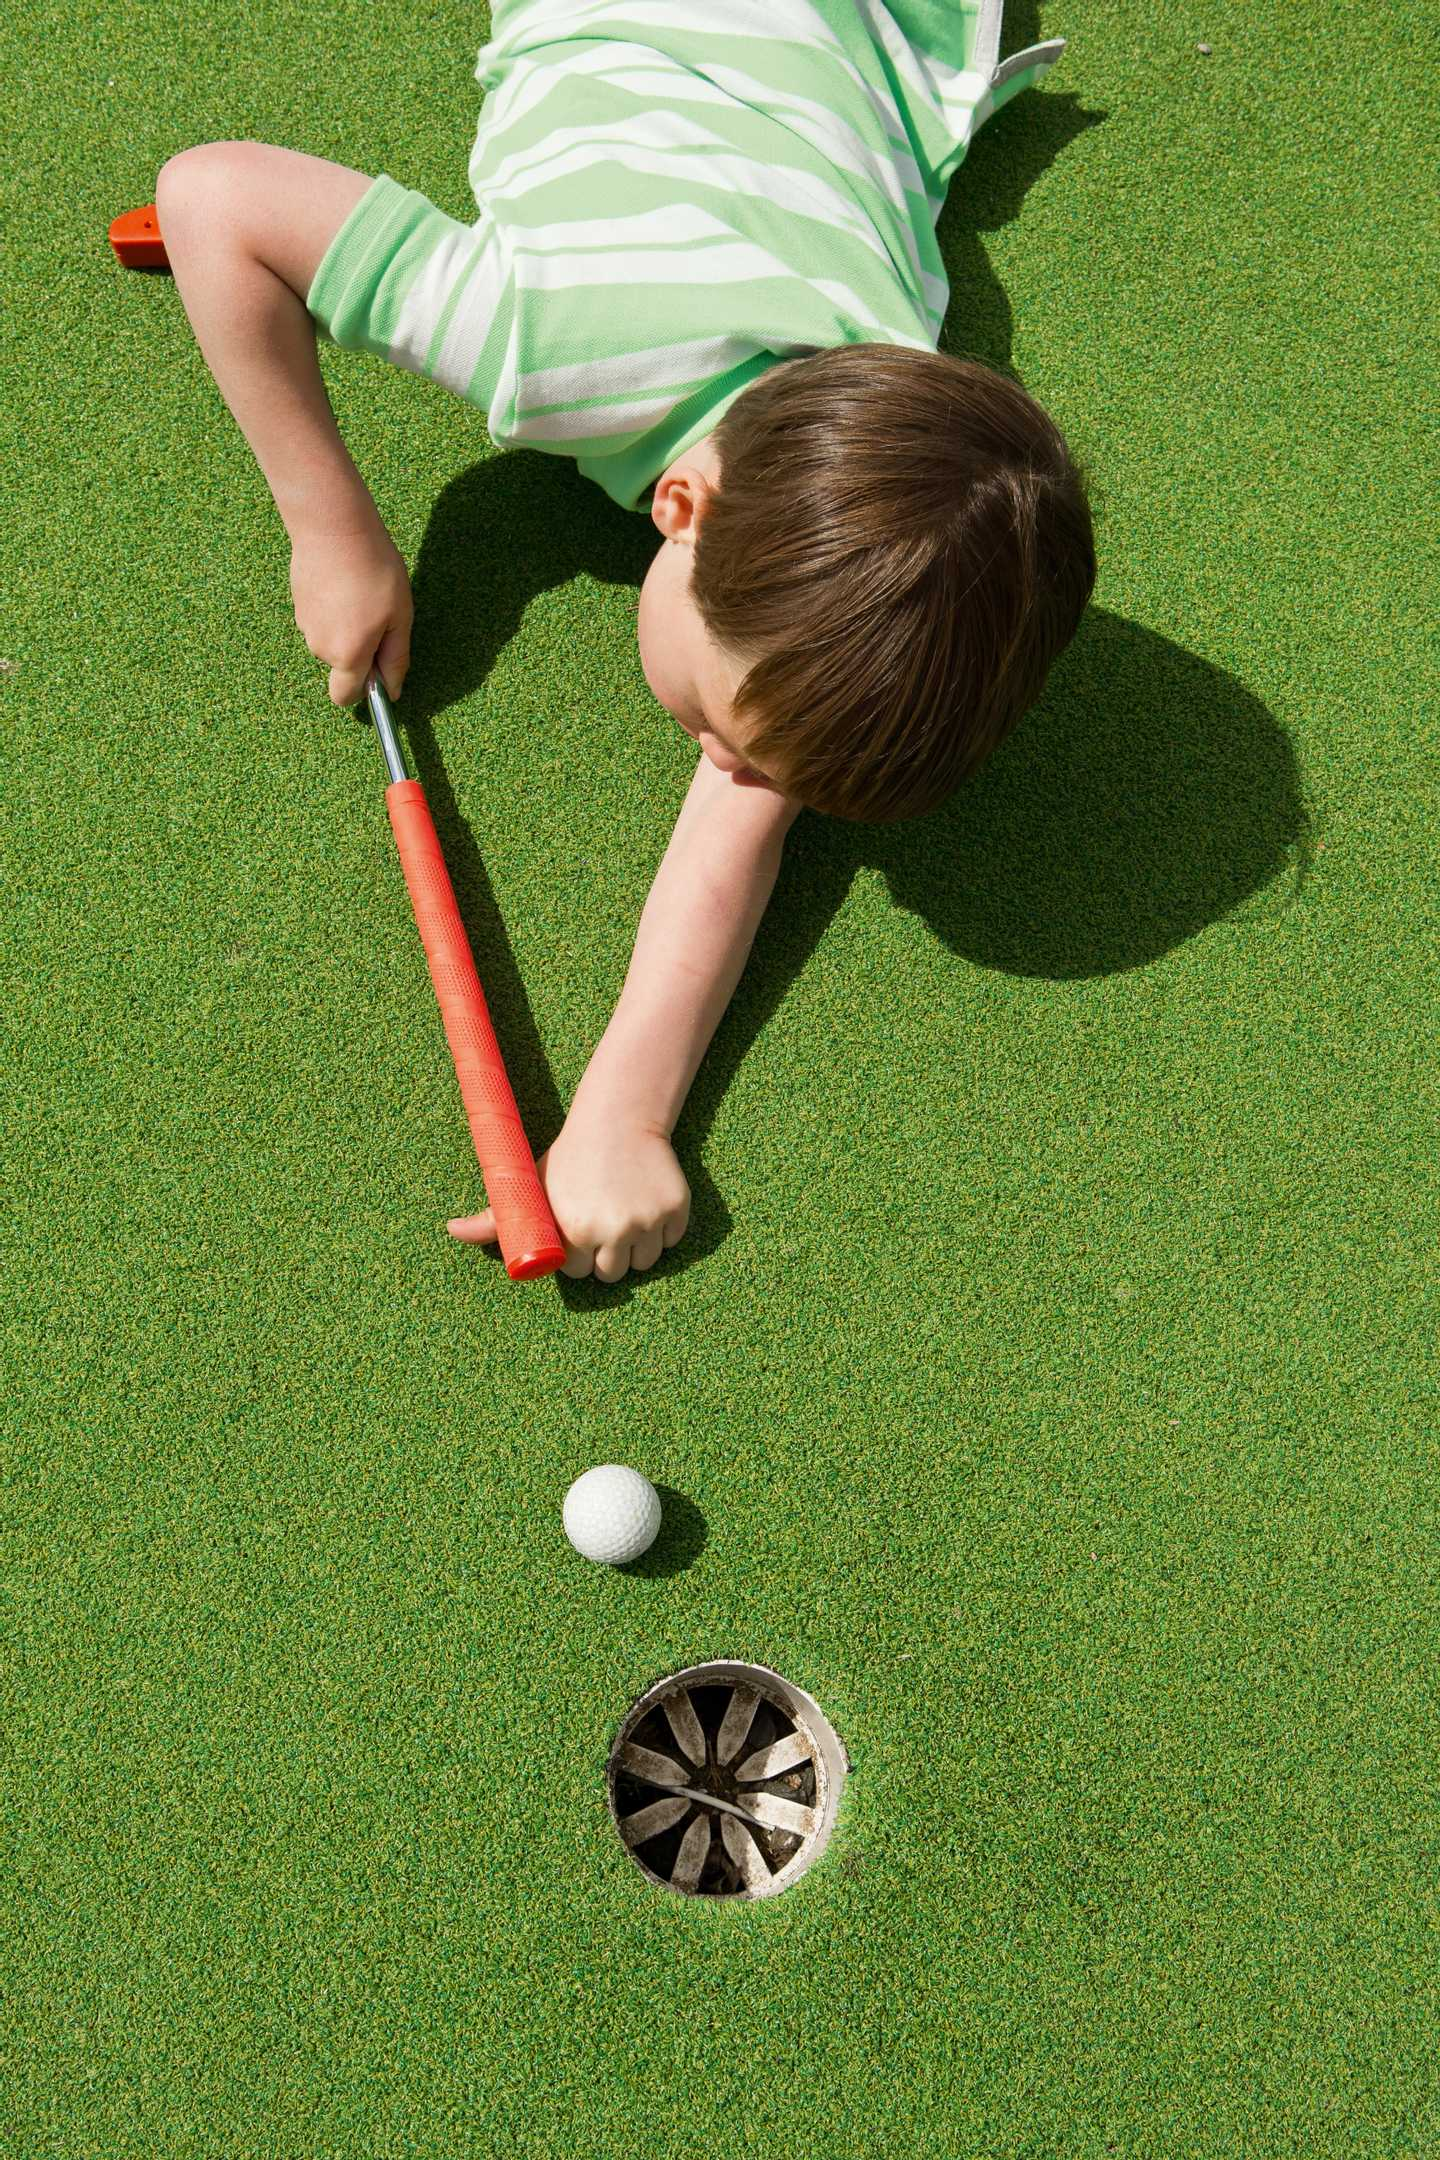 Boy putting a golf ball